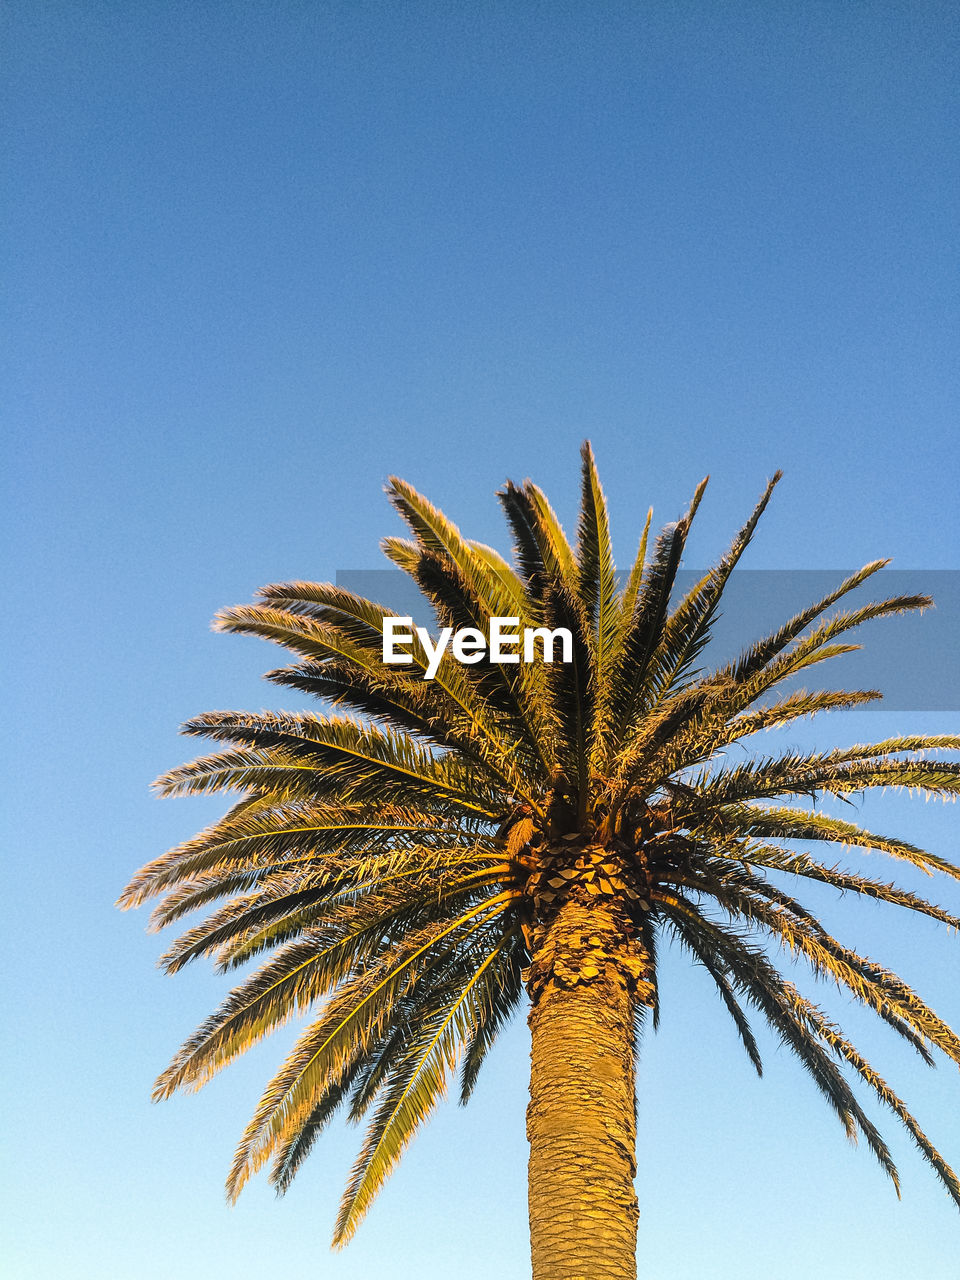 palm tree, clear sky, low angle view, tree, blue, day, outdoors, beauty in nature, nature, no people, sky